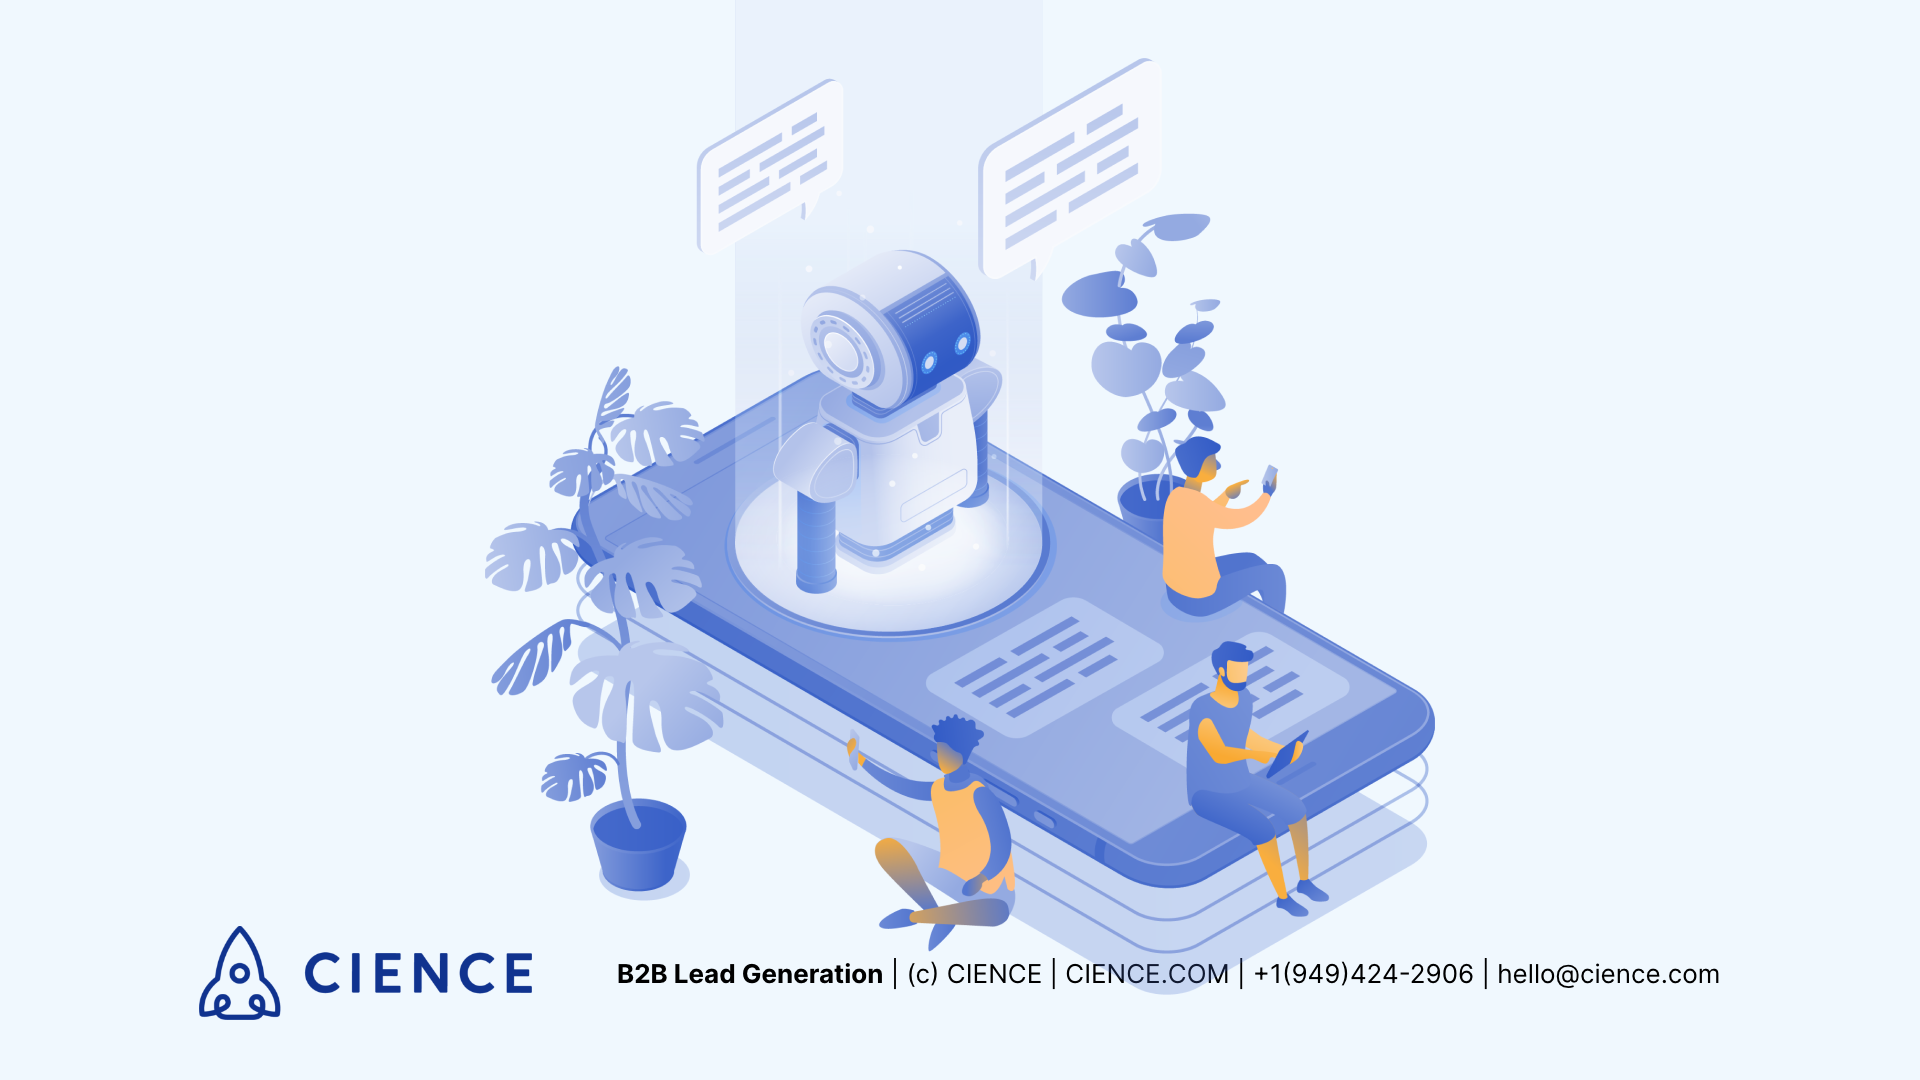 chatbot lead generation for b2b